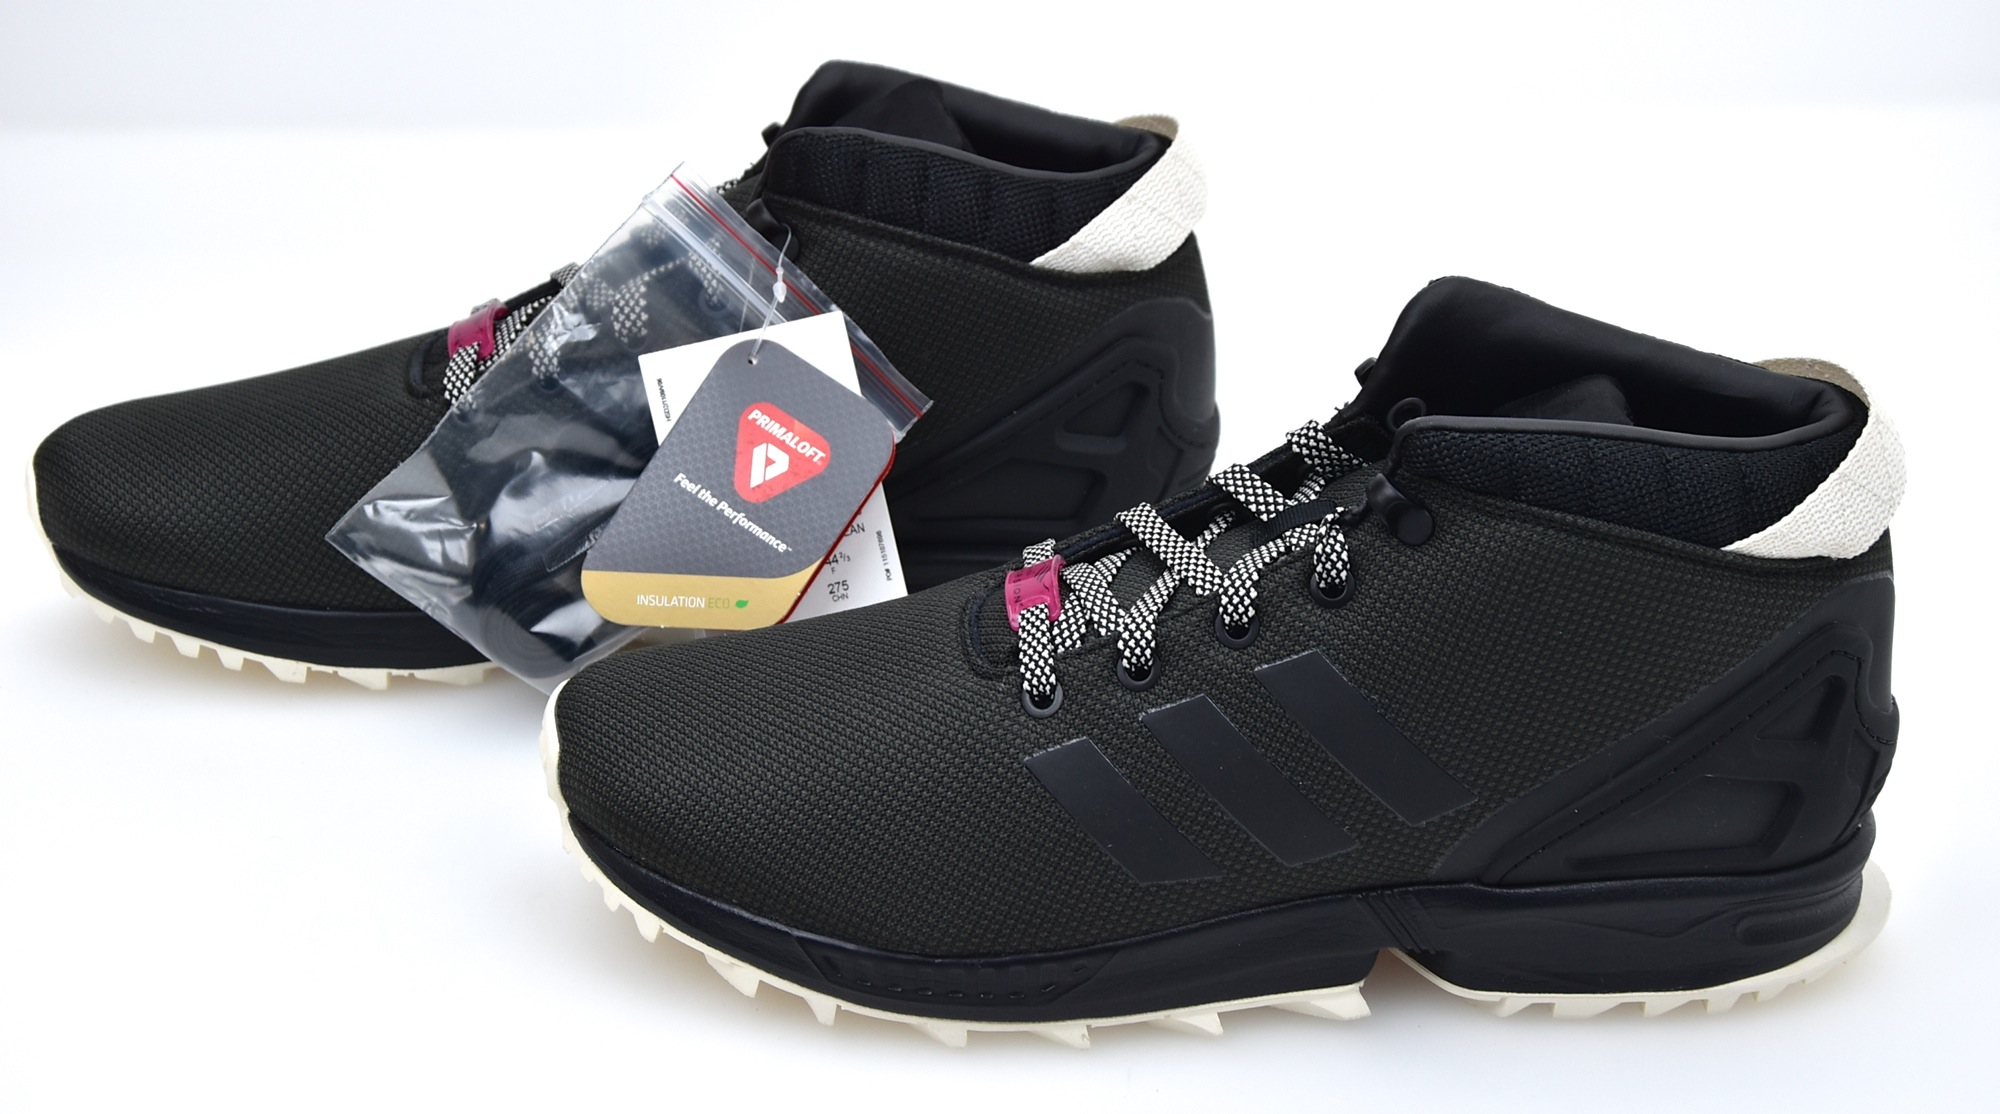 9b9ca9de0 Details about ADIDAS MAN SPORTS SNEAKER SHOES SYNTHETIC CODE ZX FLUX 5 8 TR  S79742 - S79741